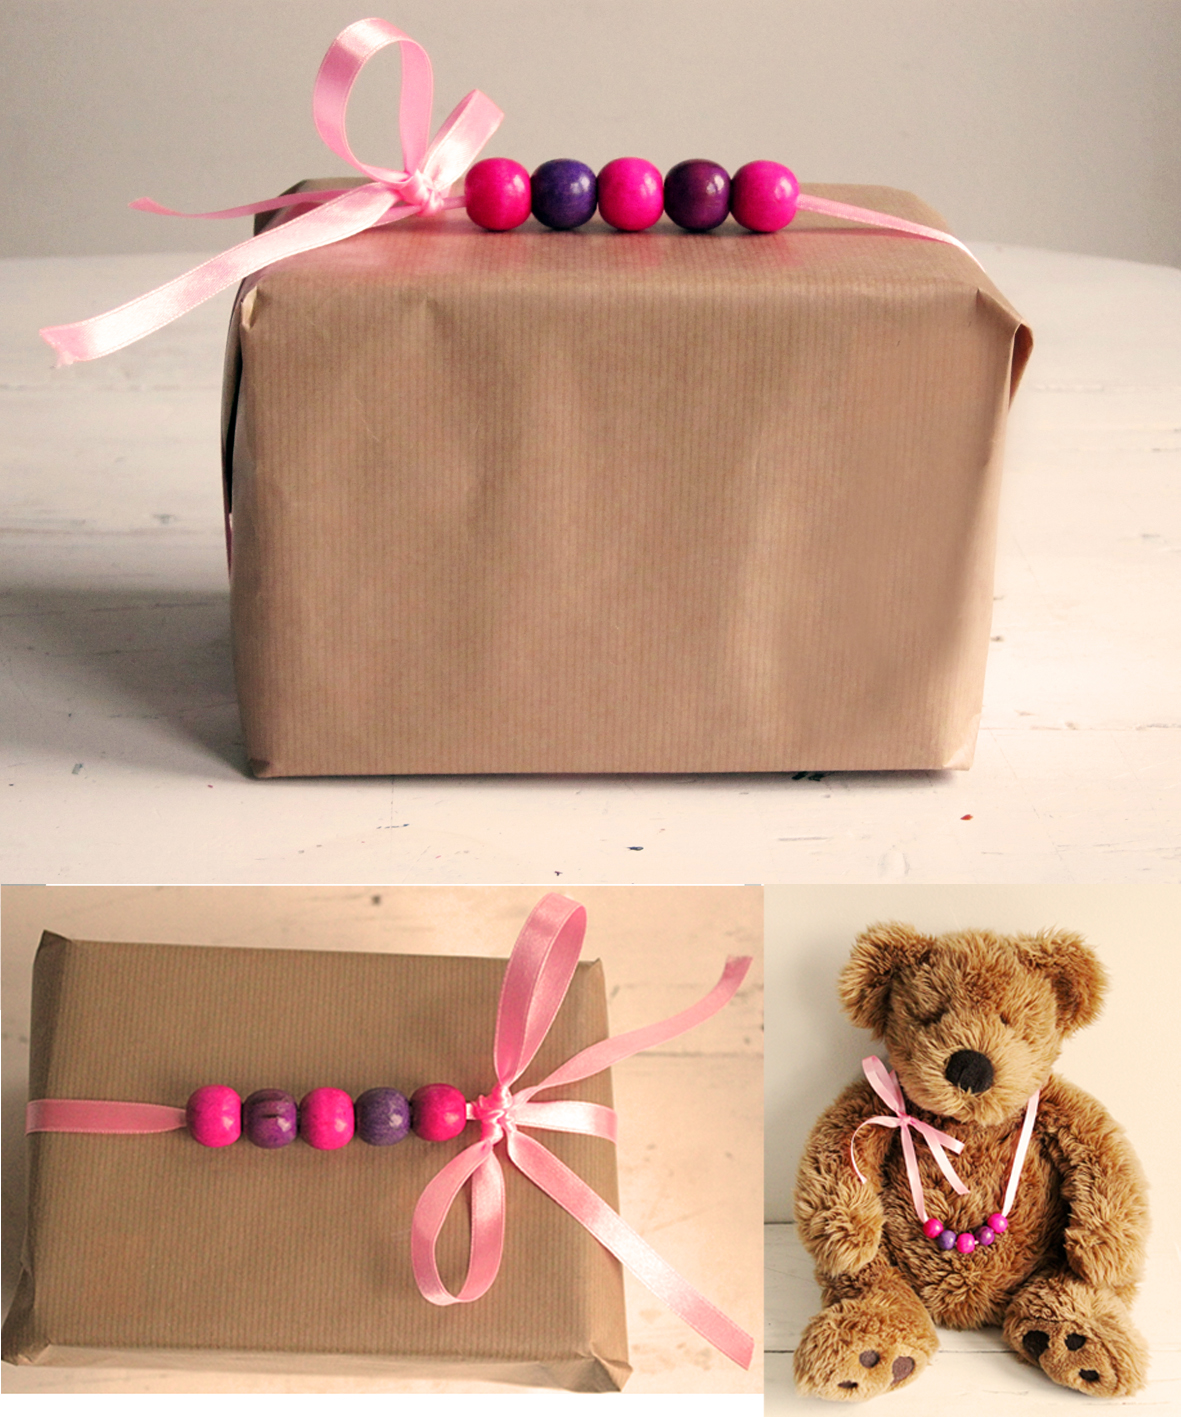 http://2.bp.blogspot.com/-hK0s8KI_Y4E/TyGzI6nBMTI/AAAAAAAABDQ/cuSizTM6RTE/s1600/Beads-pink+and+bear+collage.jpg